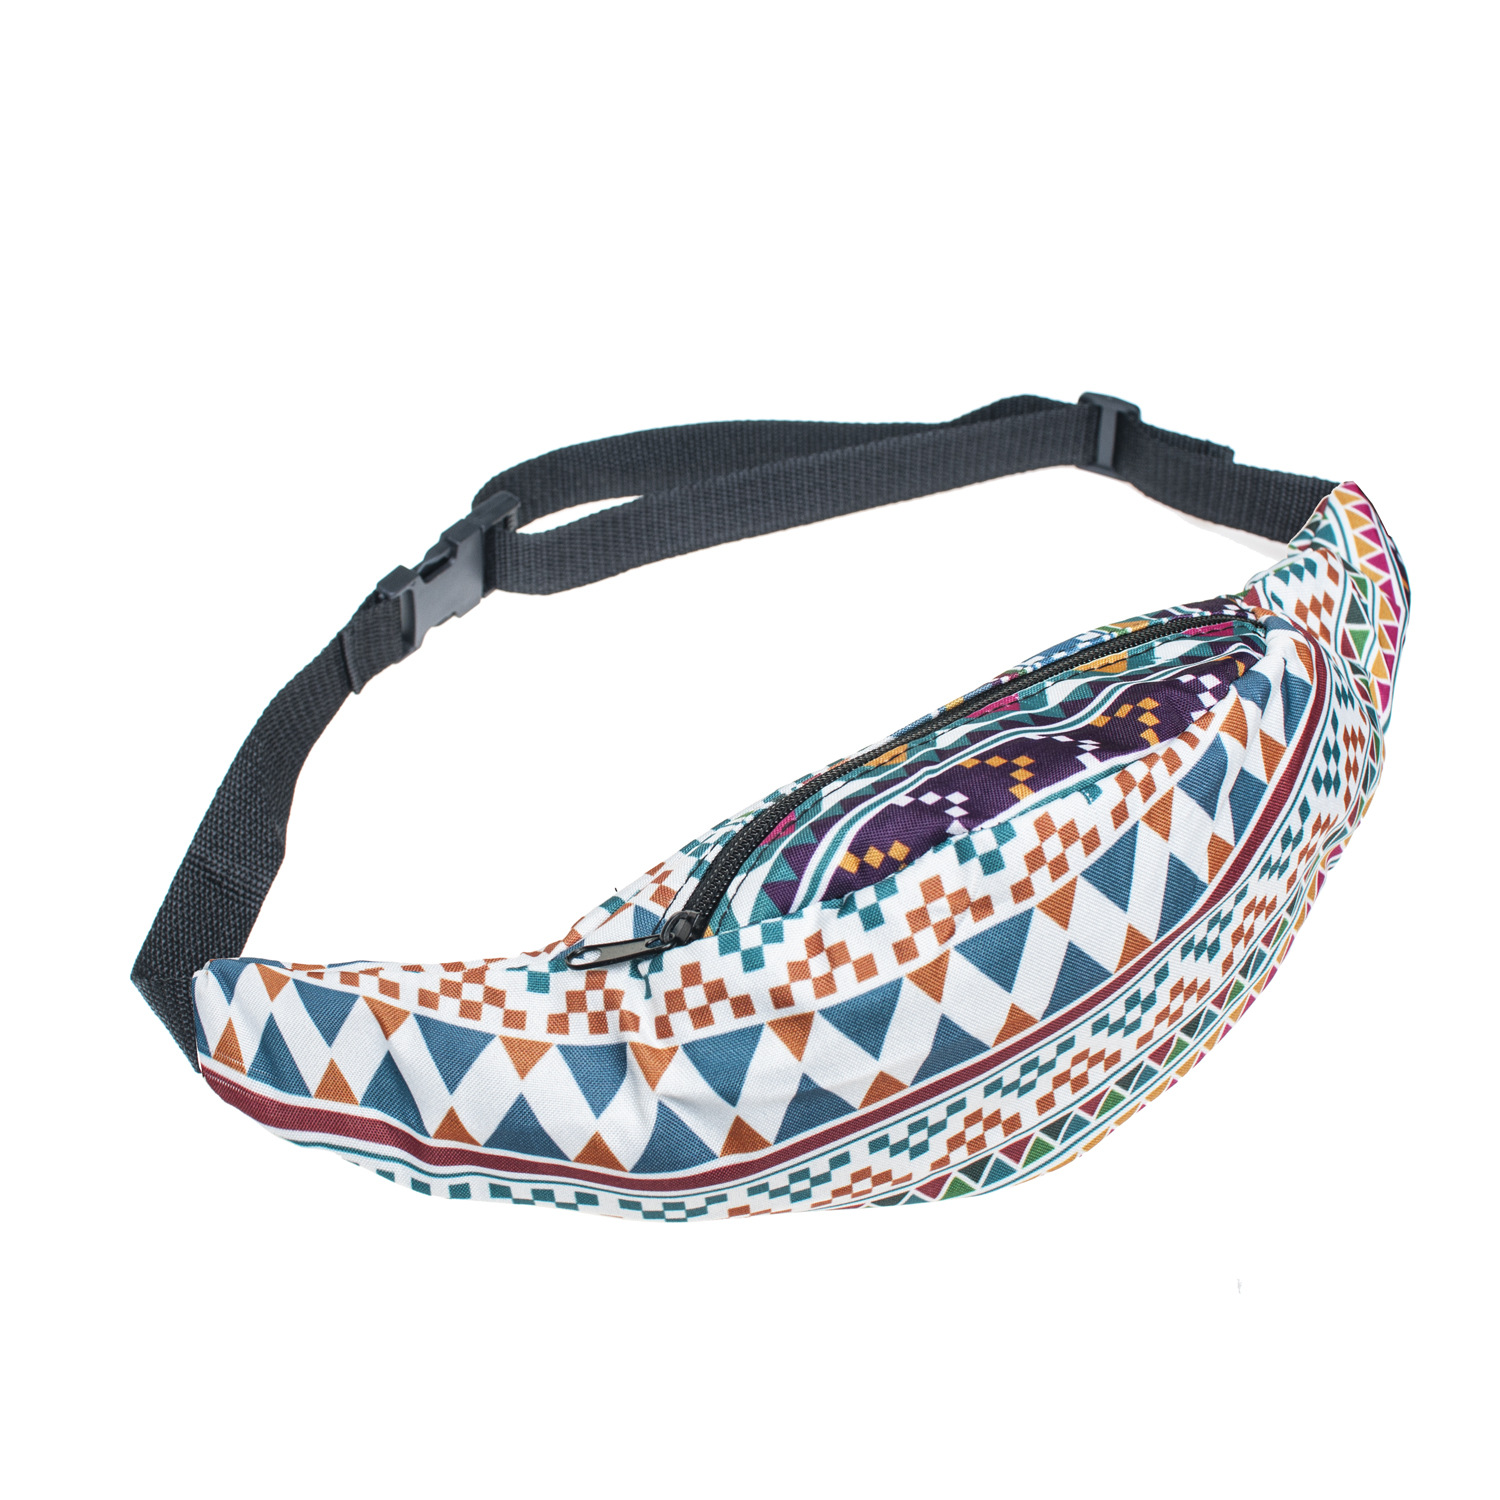 New Colorful Waist Pack For Men Fanny Pack Style Bum Bag Retro Geometry Women Money Belt Travelling Waist Bag